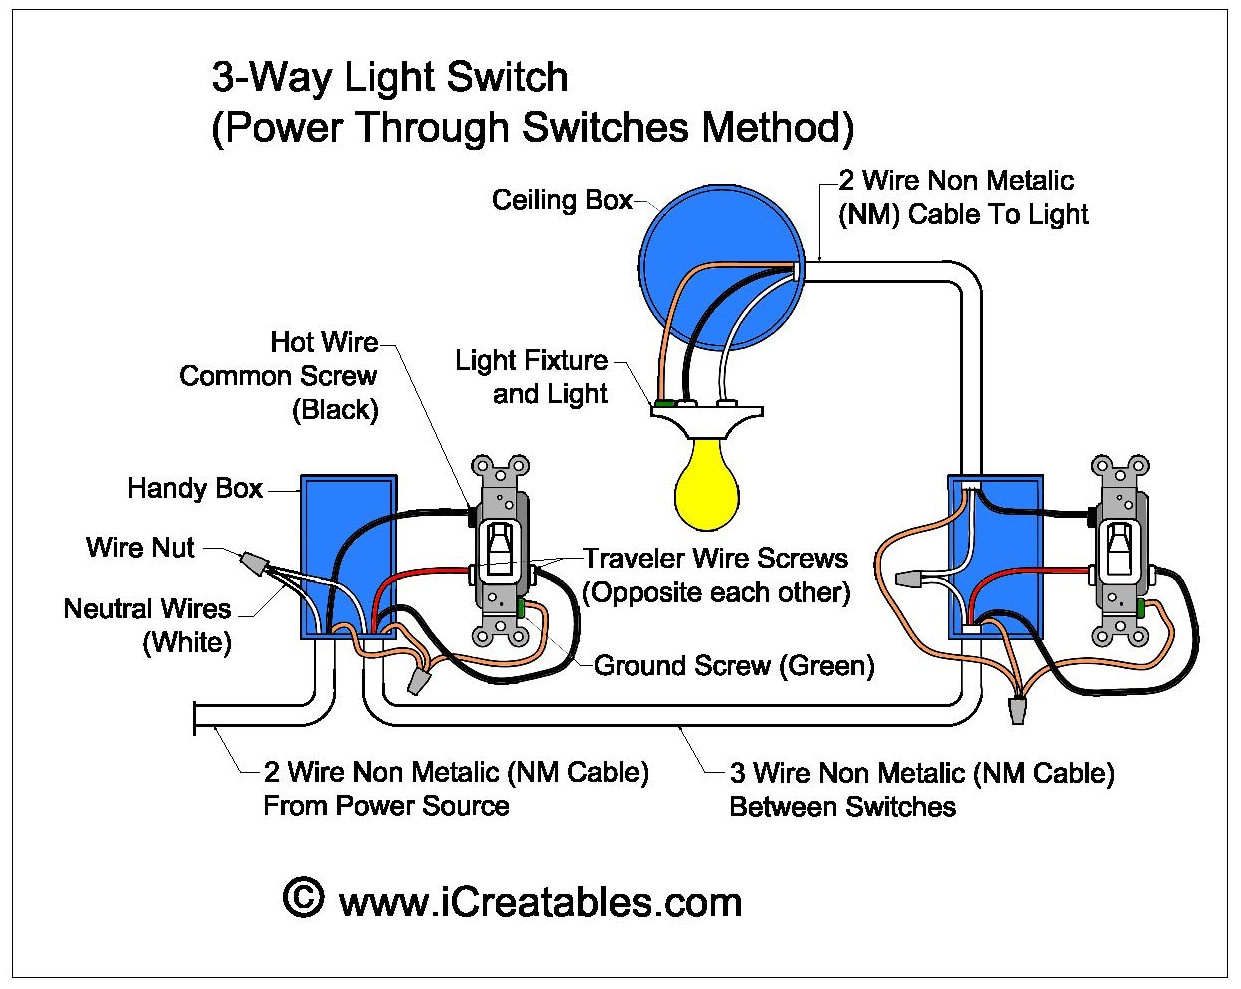 three-way-switch-wiring-diagram-jpg  Way Switch Wiring With Power At Light on 3 way dimmer switches, 3 way audio switch, 3 way light switch hook up, 3 way kill switch, 3 way light switch installation, 3 way rocker switch, 3 way fan switch, 3 way light switch terminals, 3 way light pull chain, 3 way ceiling fan, brake switch wiring, 3 way relay switch, 3 way light diagram, 3-way 2 light wiring, brake light wiring, 3 way light switch troubleshooting, 3 way light switches, 3 way push button switch, 3 way dimmer switch, 3 way ignition switch,